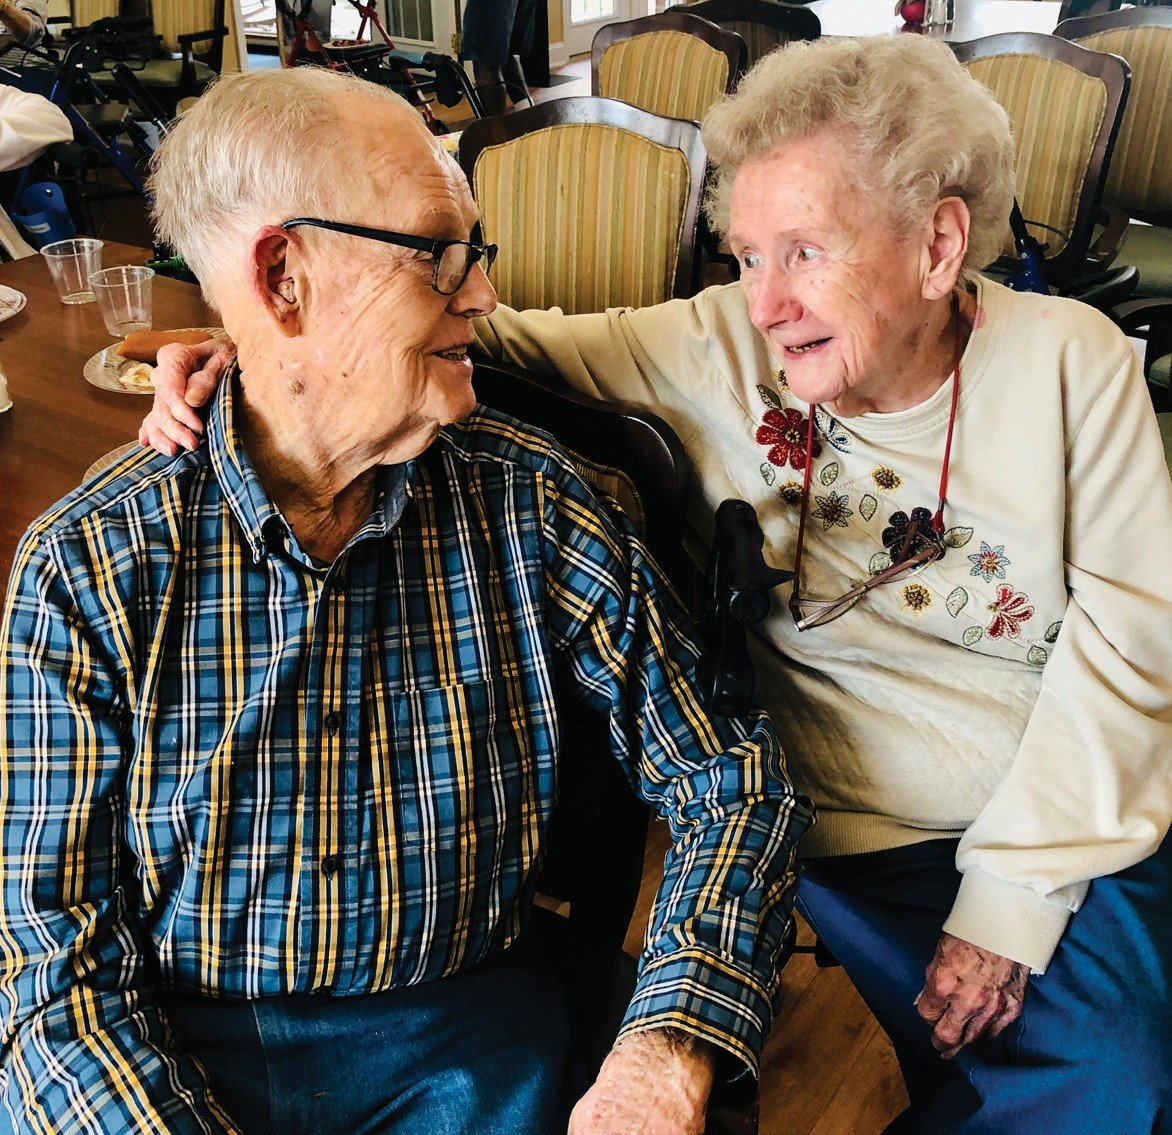 Rainey and Pauline Hester celebrated their 75th wedding anniversary last month. sUBMITED